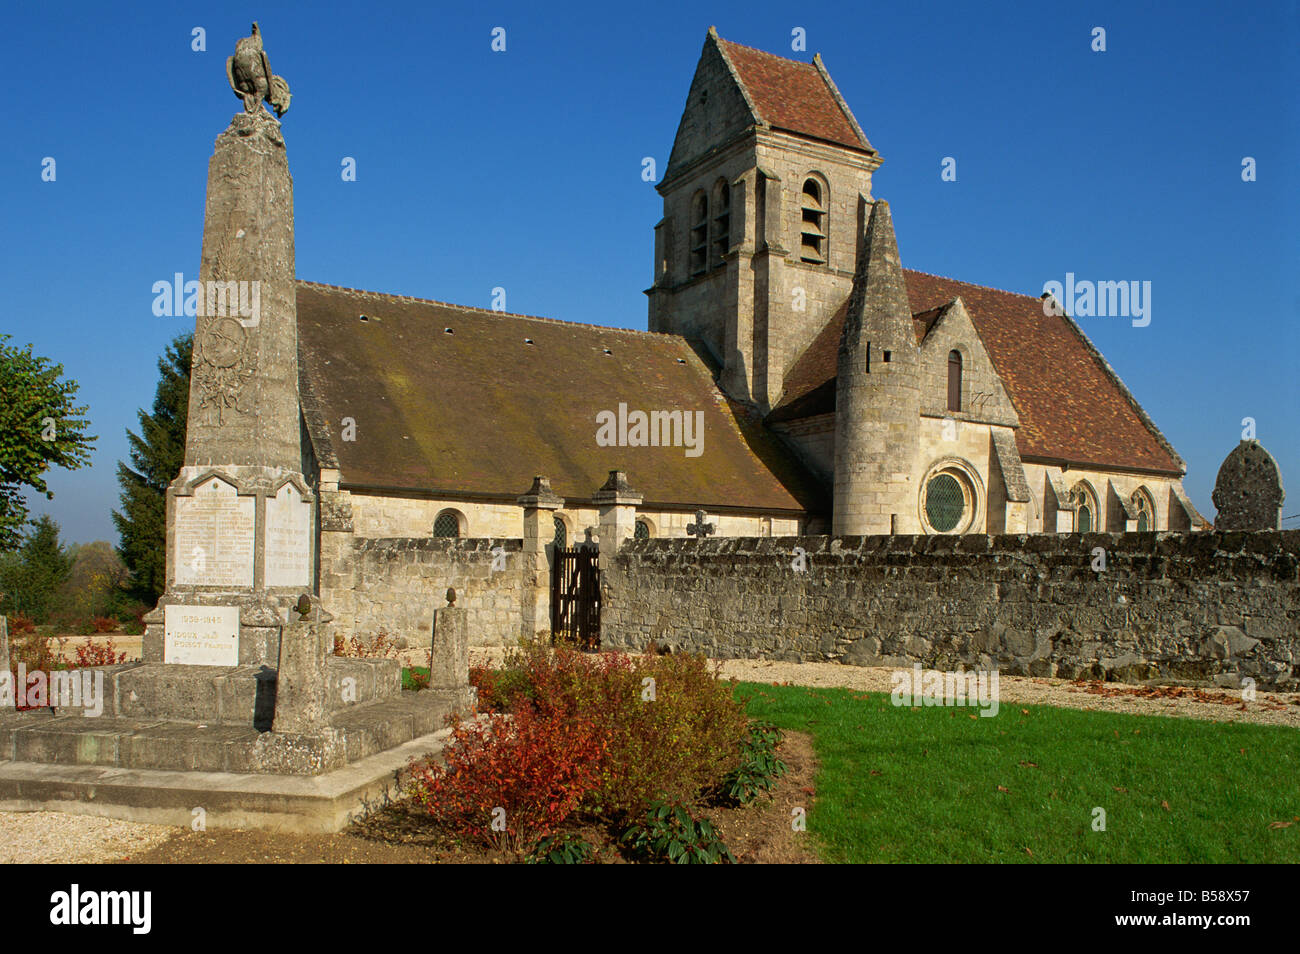 Villers Helon, Picardy, France, Europe Stock Photo